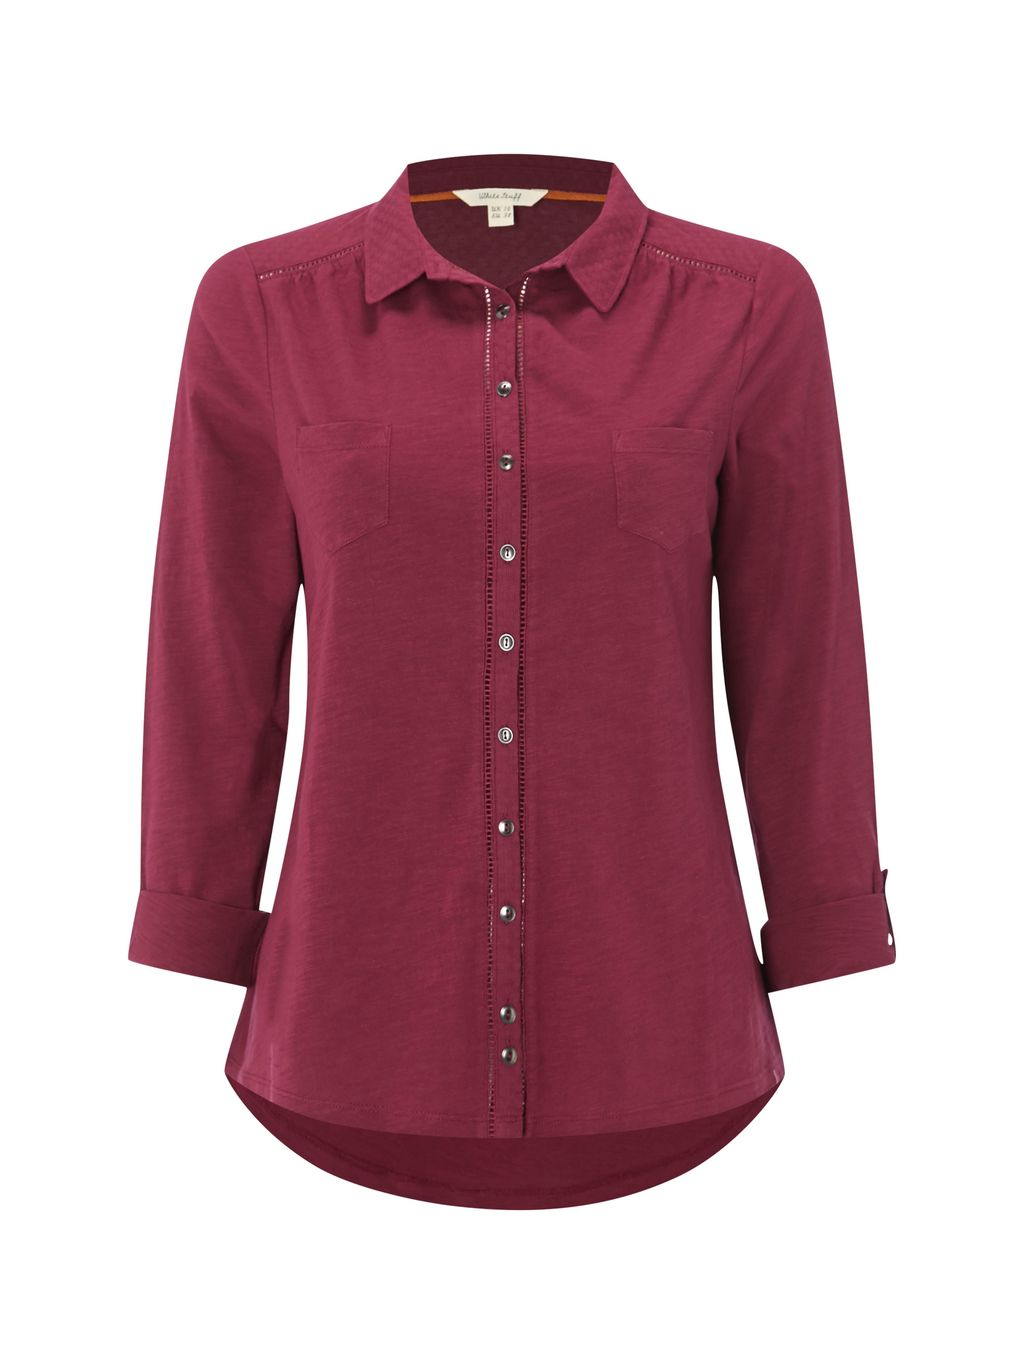 Pearl Ls Jersey Shirt, Purple - neckline: shirt collar/peter pan/zip with opening; pattern: plain; style: shirt; predominant colour: burgundy; occasions: casual; length: standard; fibres: cotton - 100%; fit: straight cut; sleeve length: 3/4 length; sleeve style: standard; pattern type: fabric; texture group: jersey - stretchy/drapey; season: s/s 2016; wardrobe: highlight